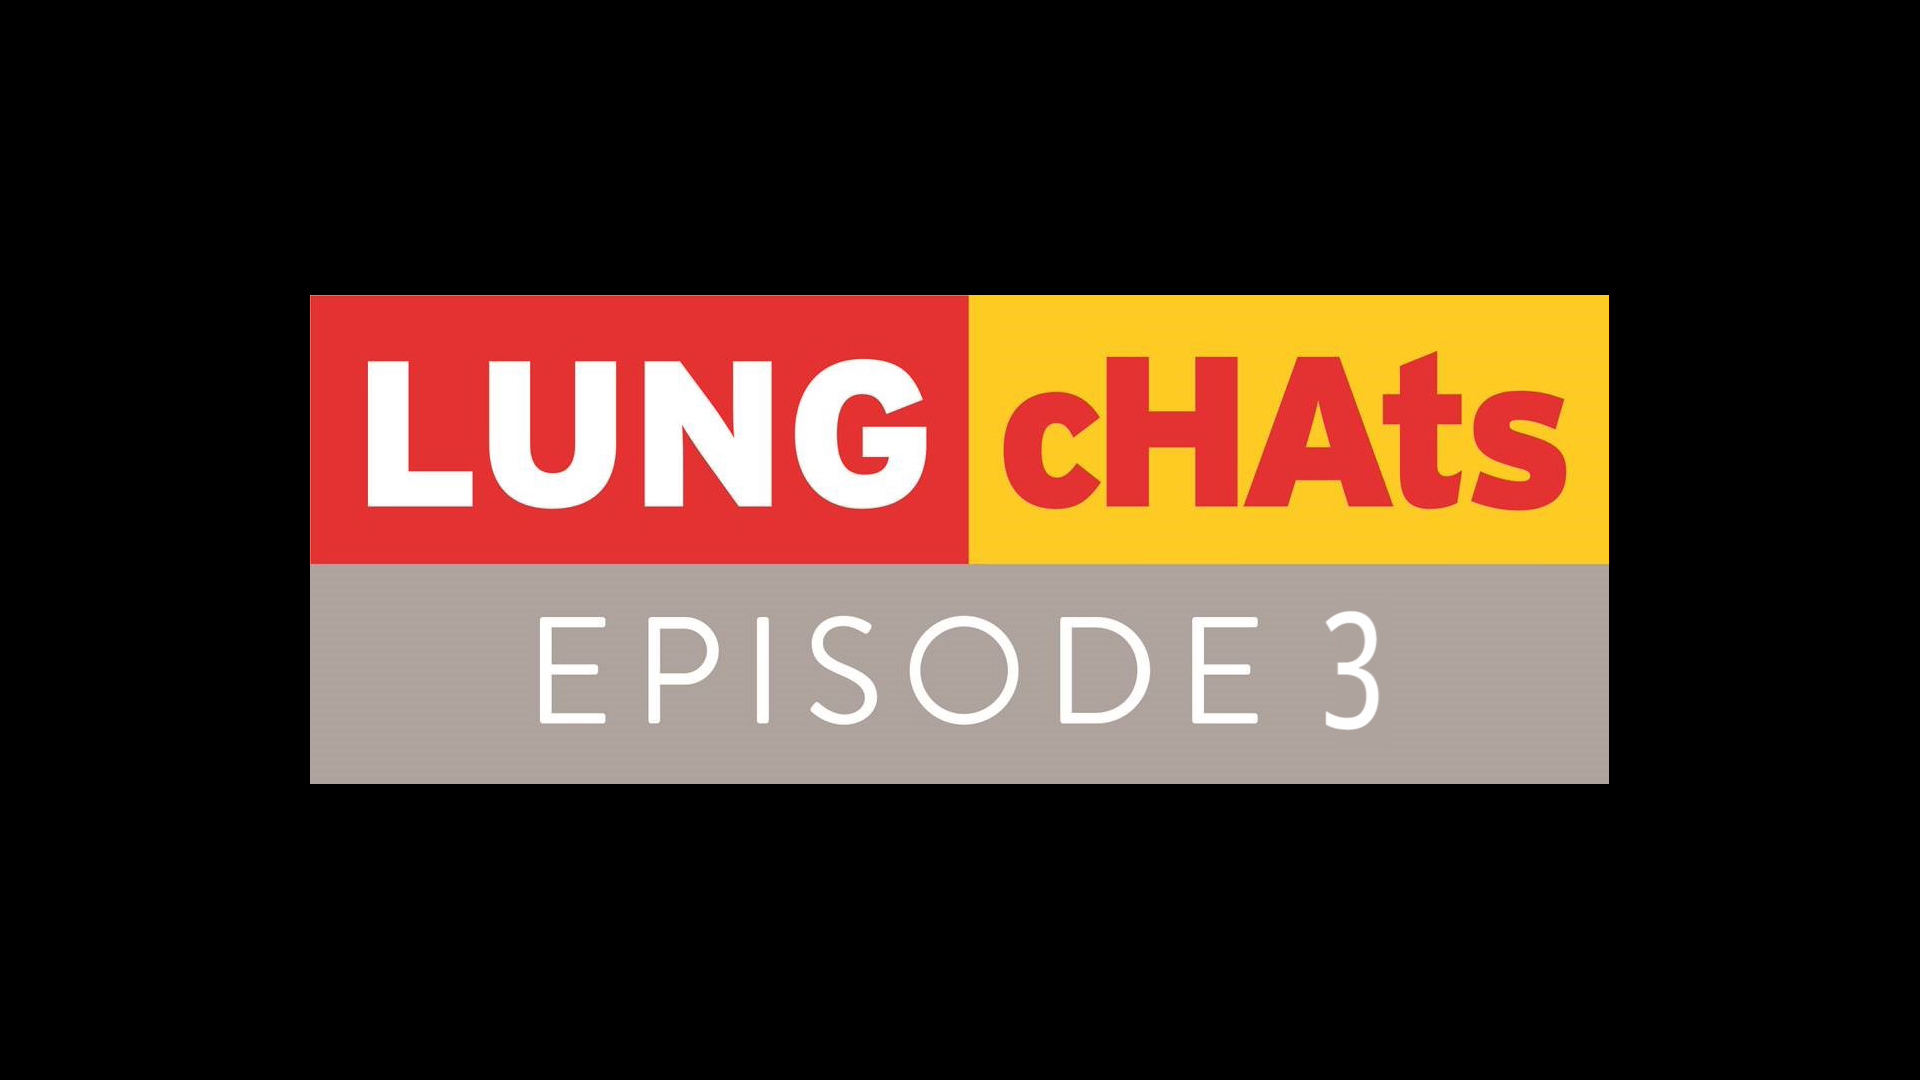 Lung Chats - Episode 3